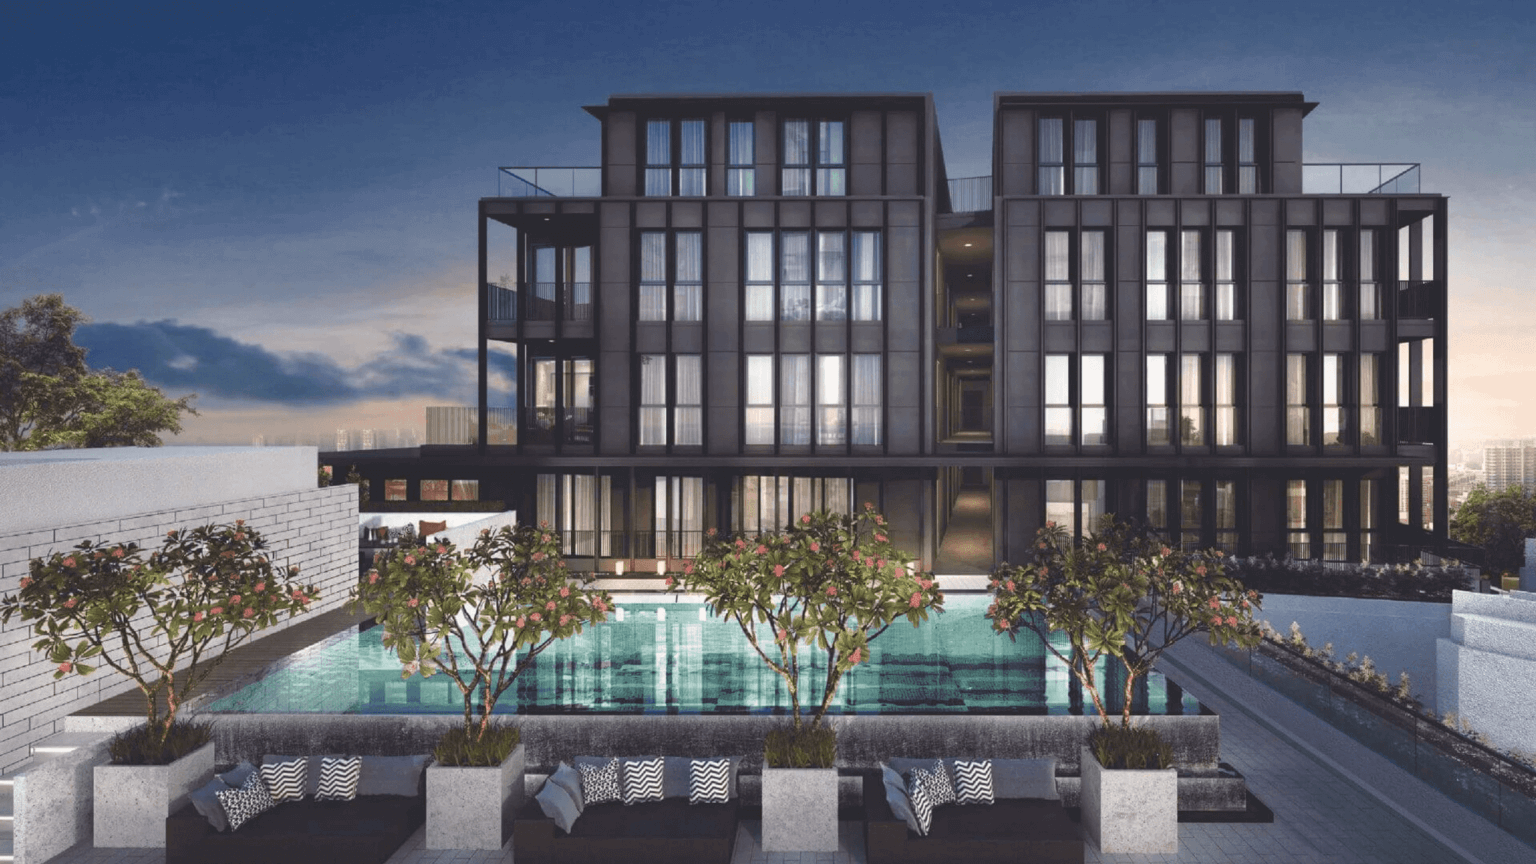 Mori Condo Site Plan at Guillemard Front View